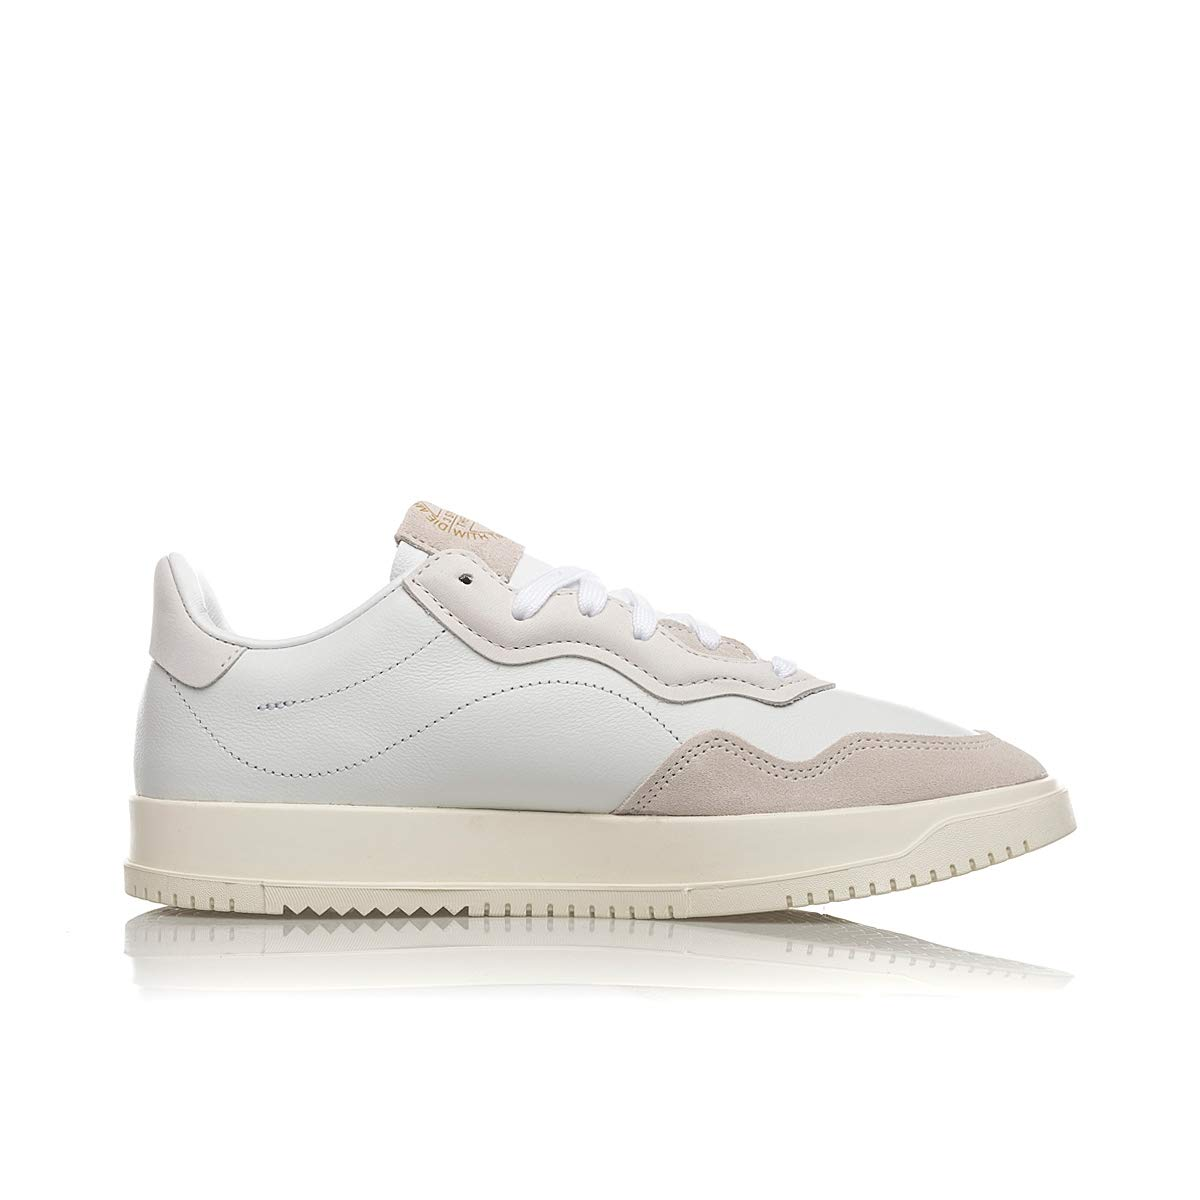 Sc Premiere Sneakers White Adidas Premium Ee7720 Chal